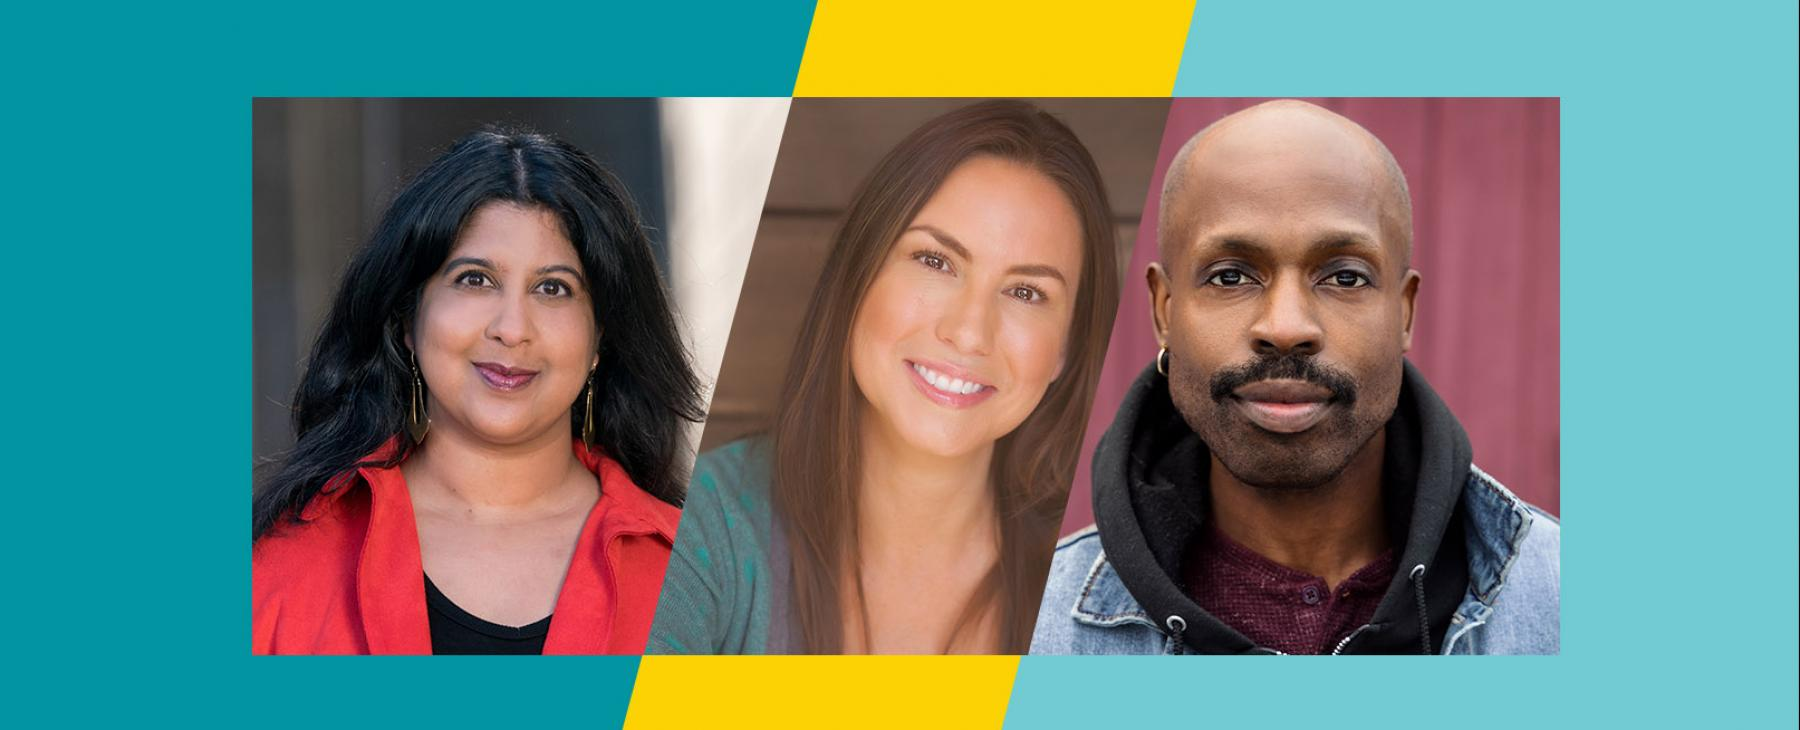 Amrita is an Indian woman with long dark hair, DeLanna is an Indigenous woman with long, lightbrown hair, and Jarvis is a black man with a bald head and a moustache.